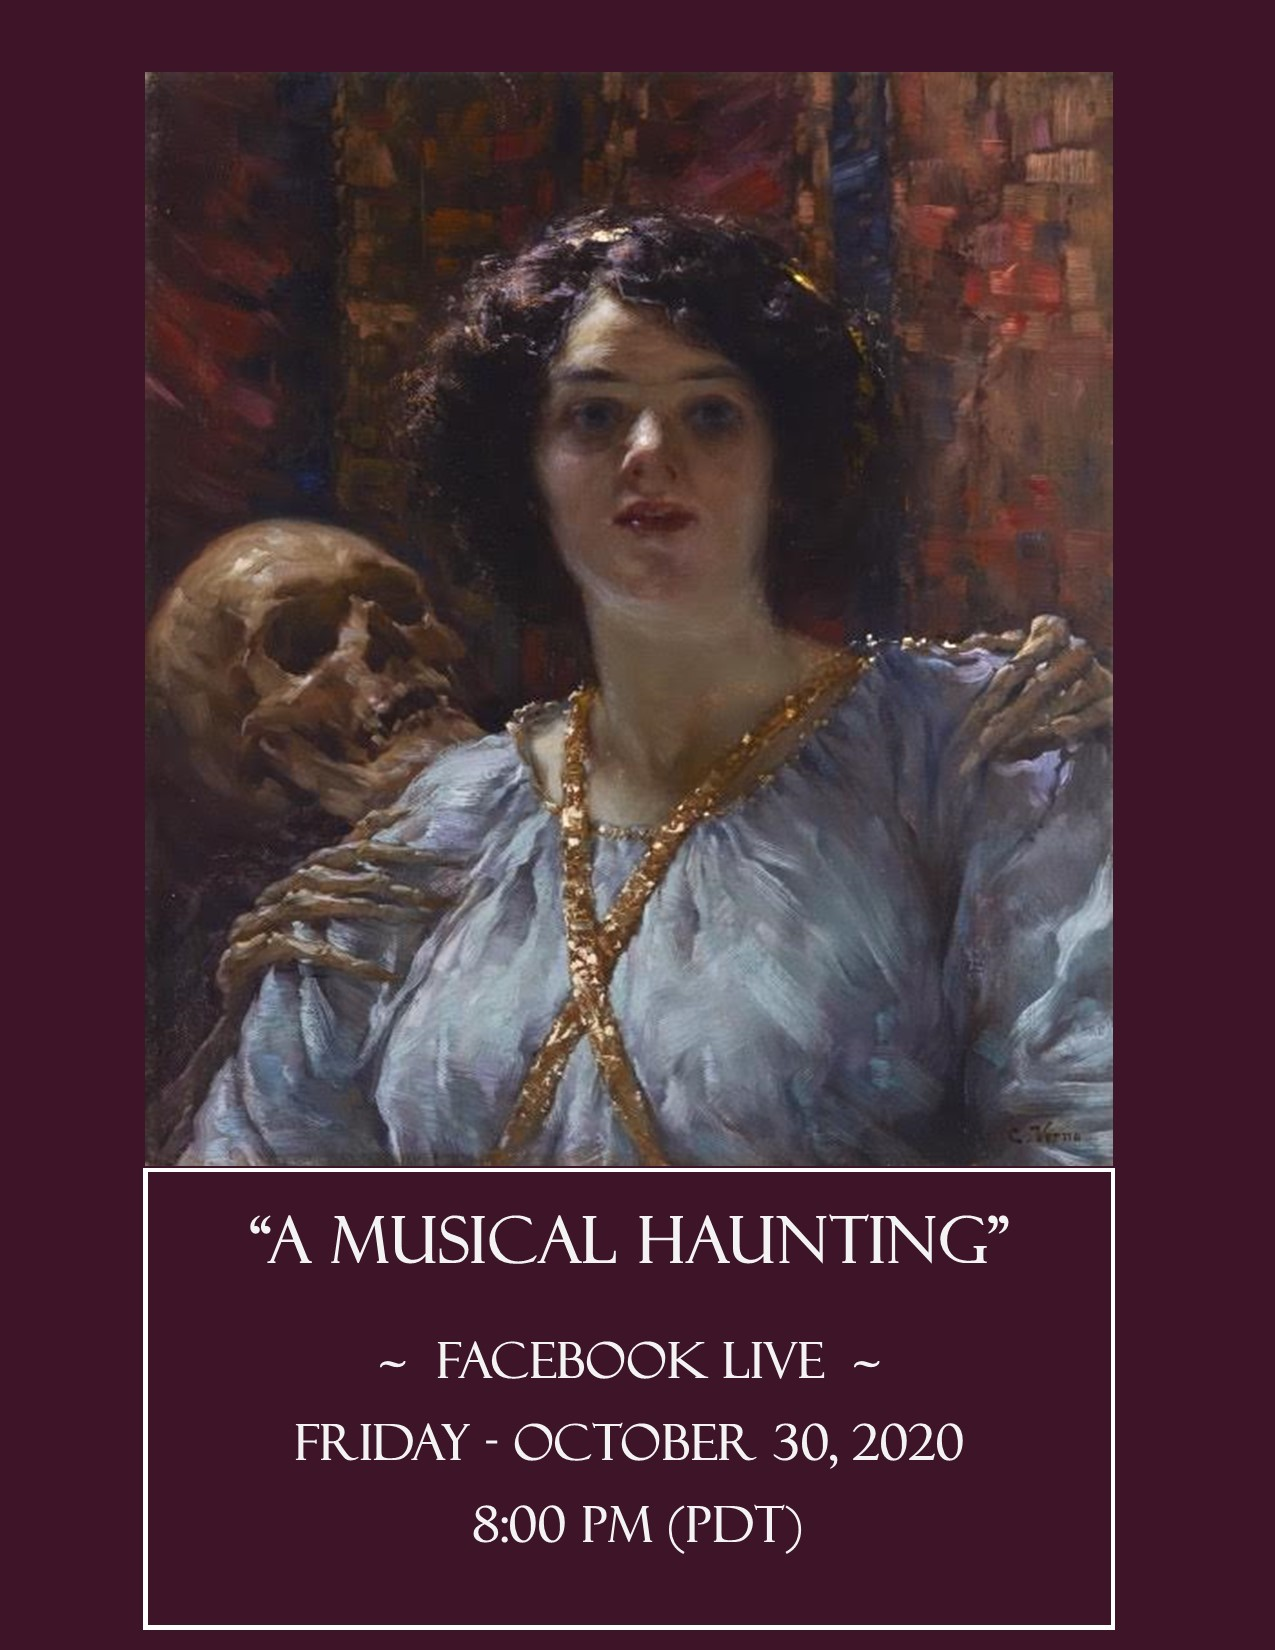 A Musical Haunting 10-30-20